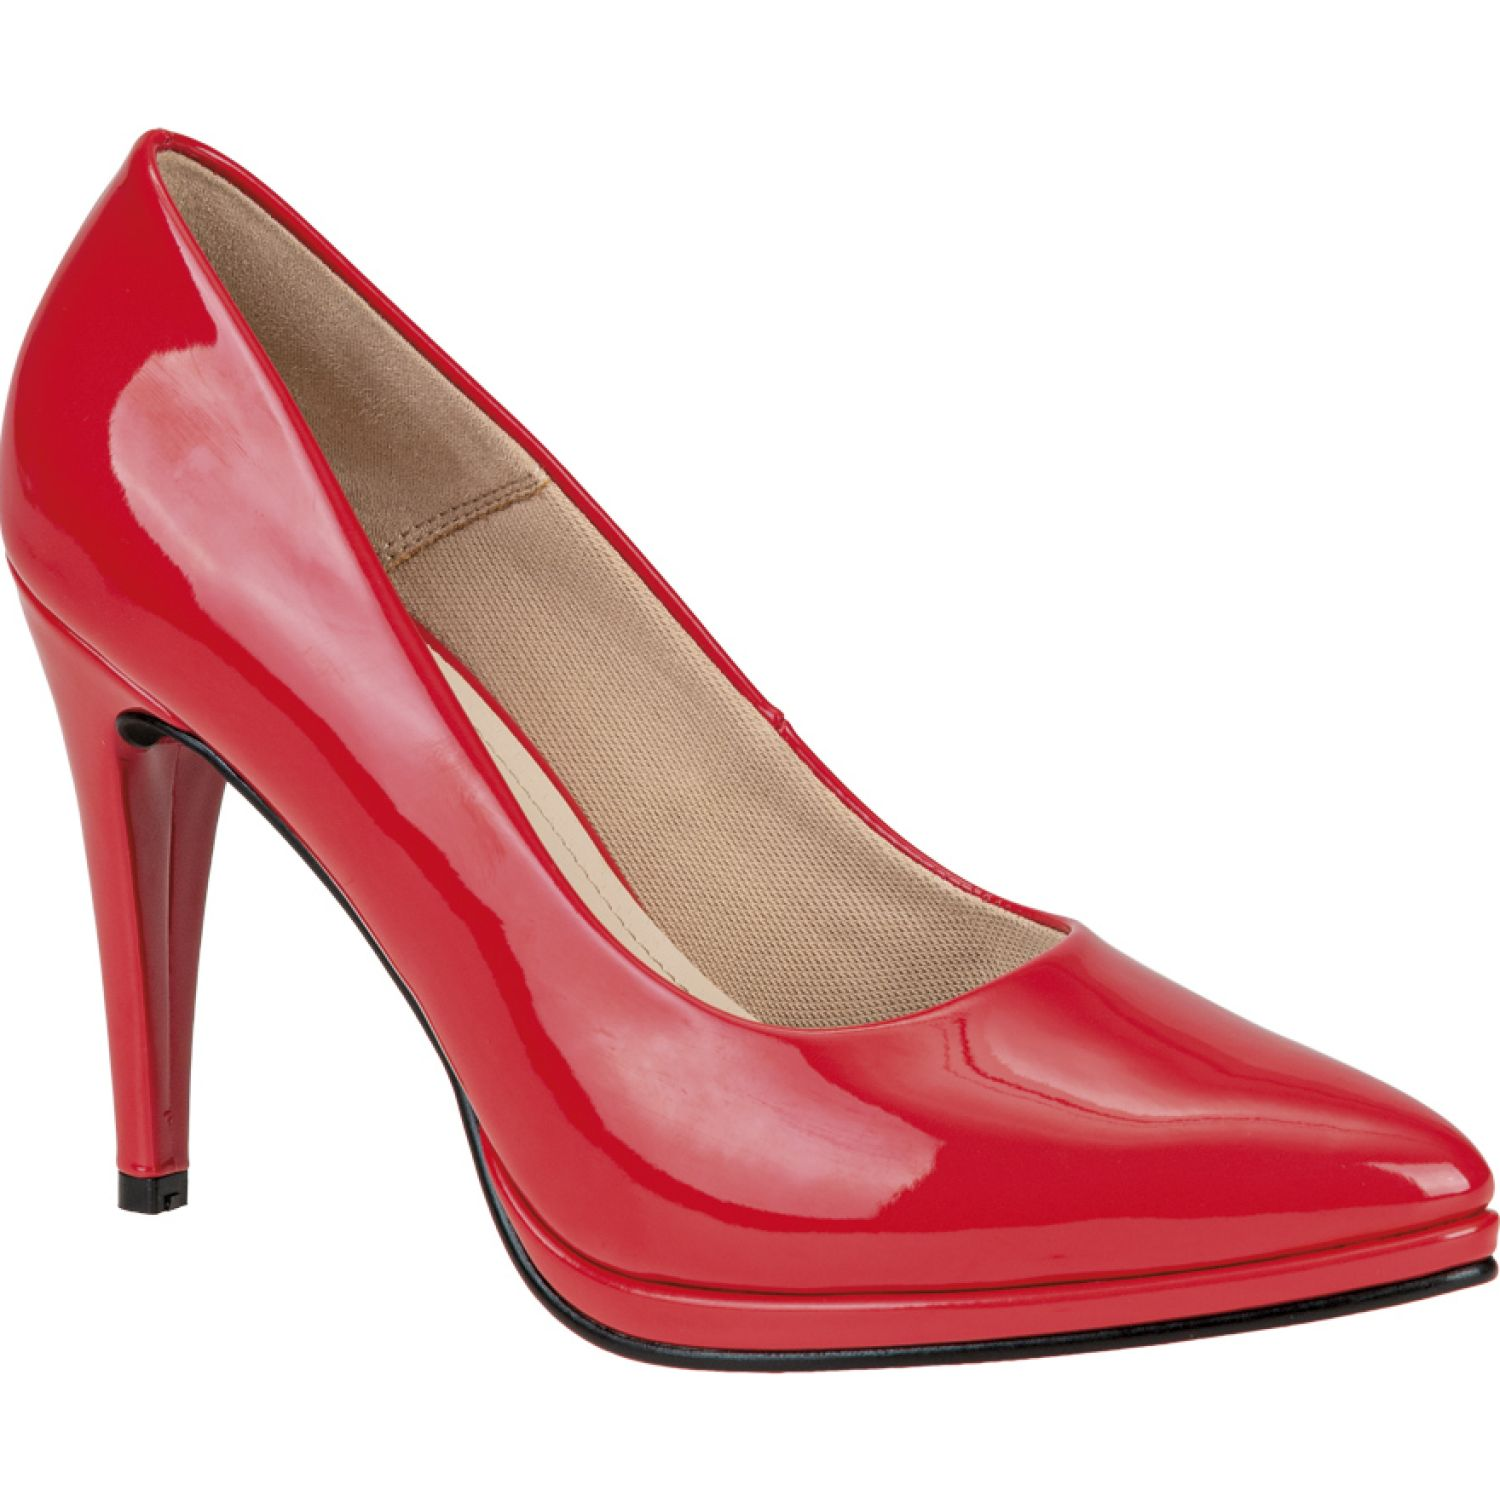 FOOTLOOSE Fh-03i18 ROJO Estiletos y pumps